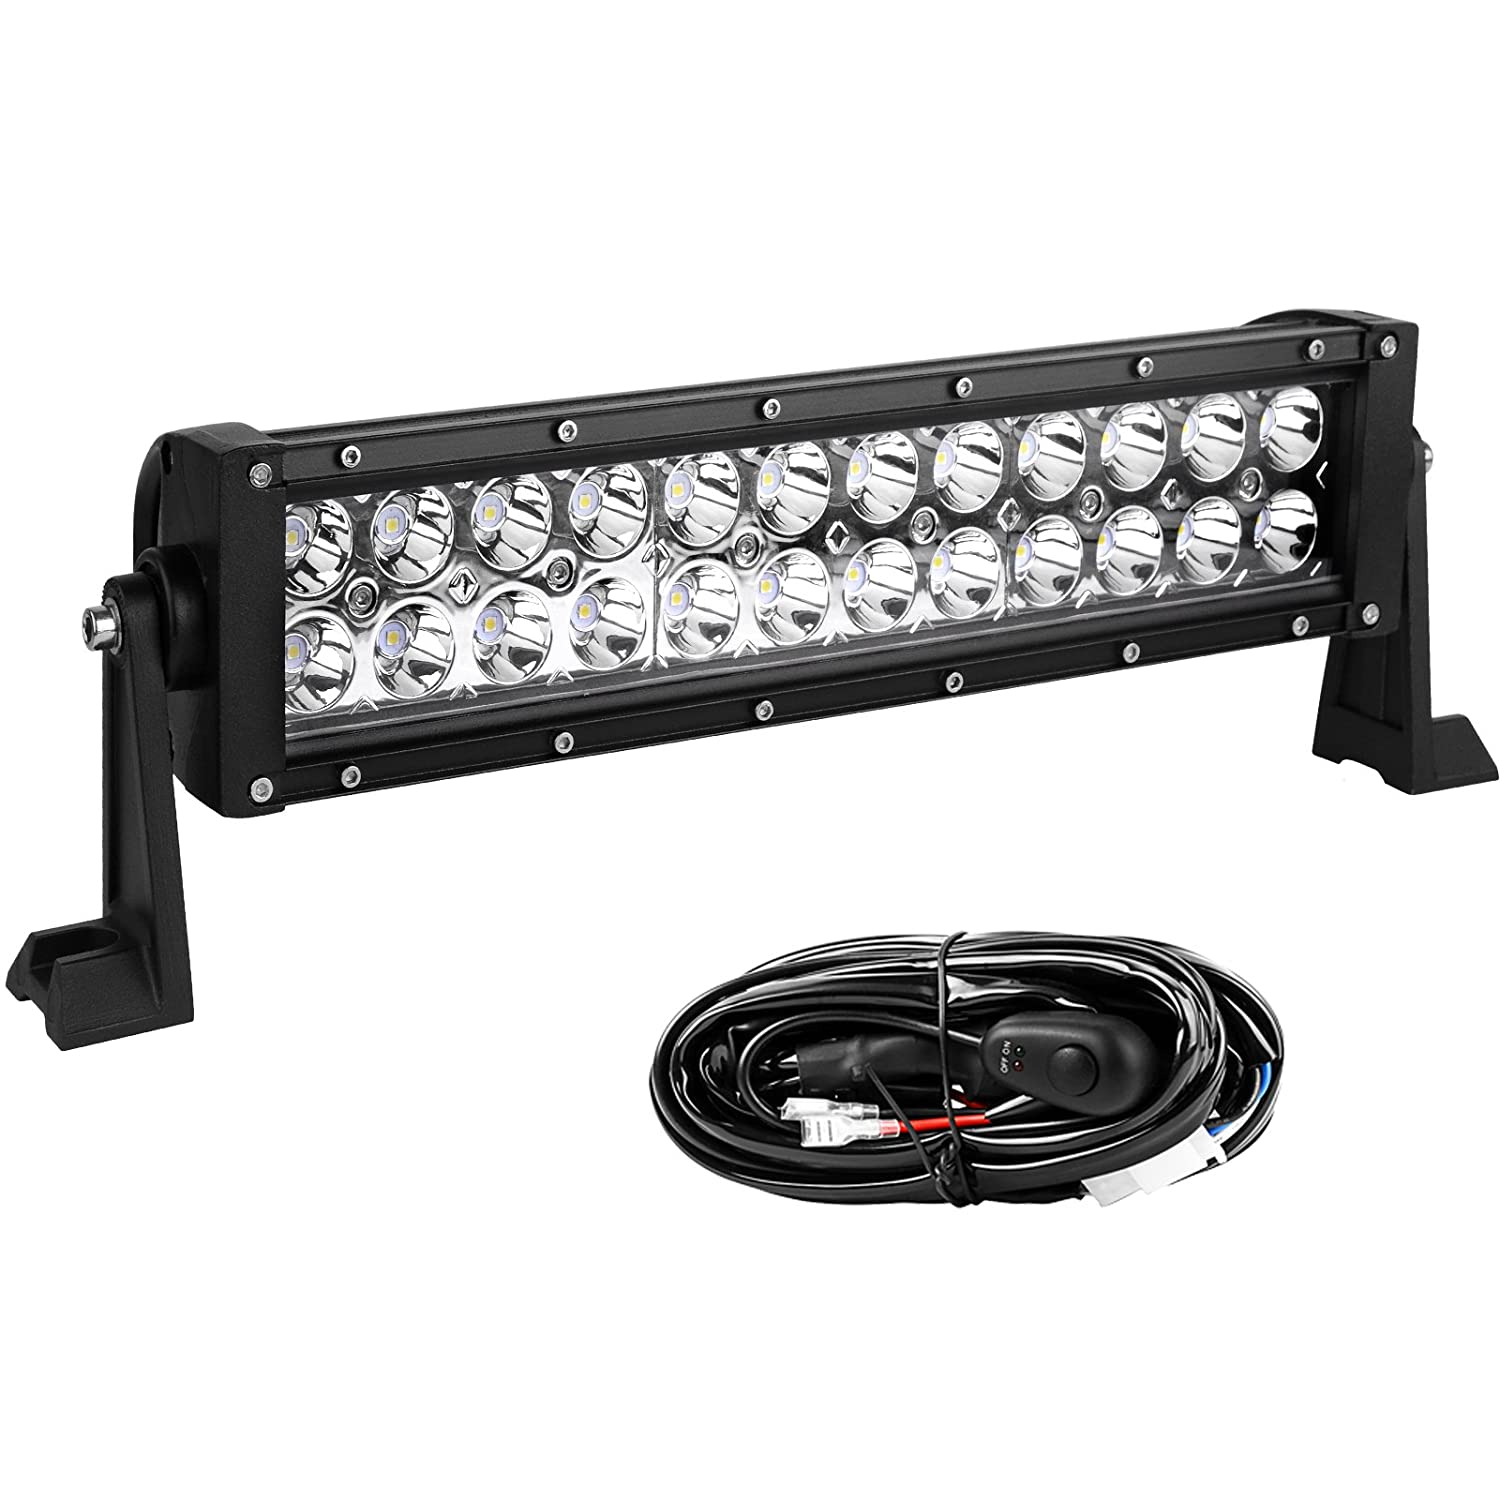 Outlet Led Light Pod Yitamotor 12inch 72w Bar Wiring Spotlights Harness Spot Work